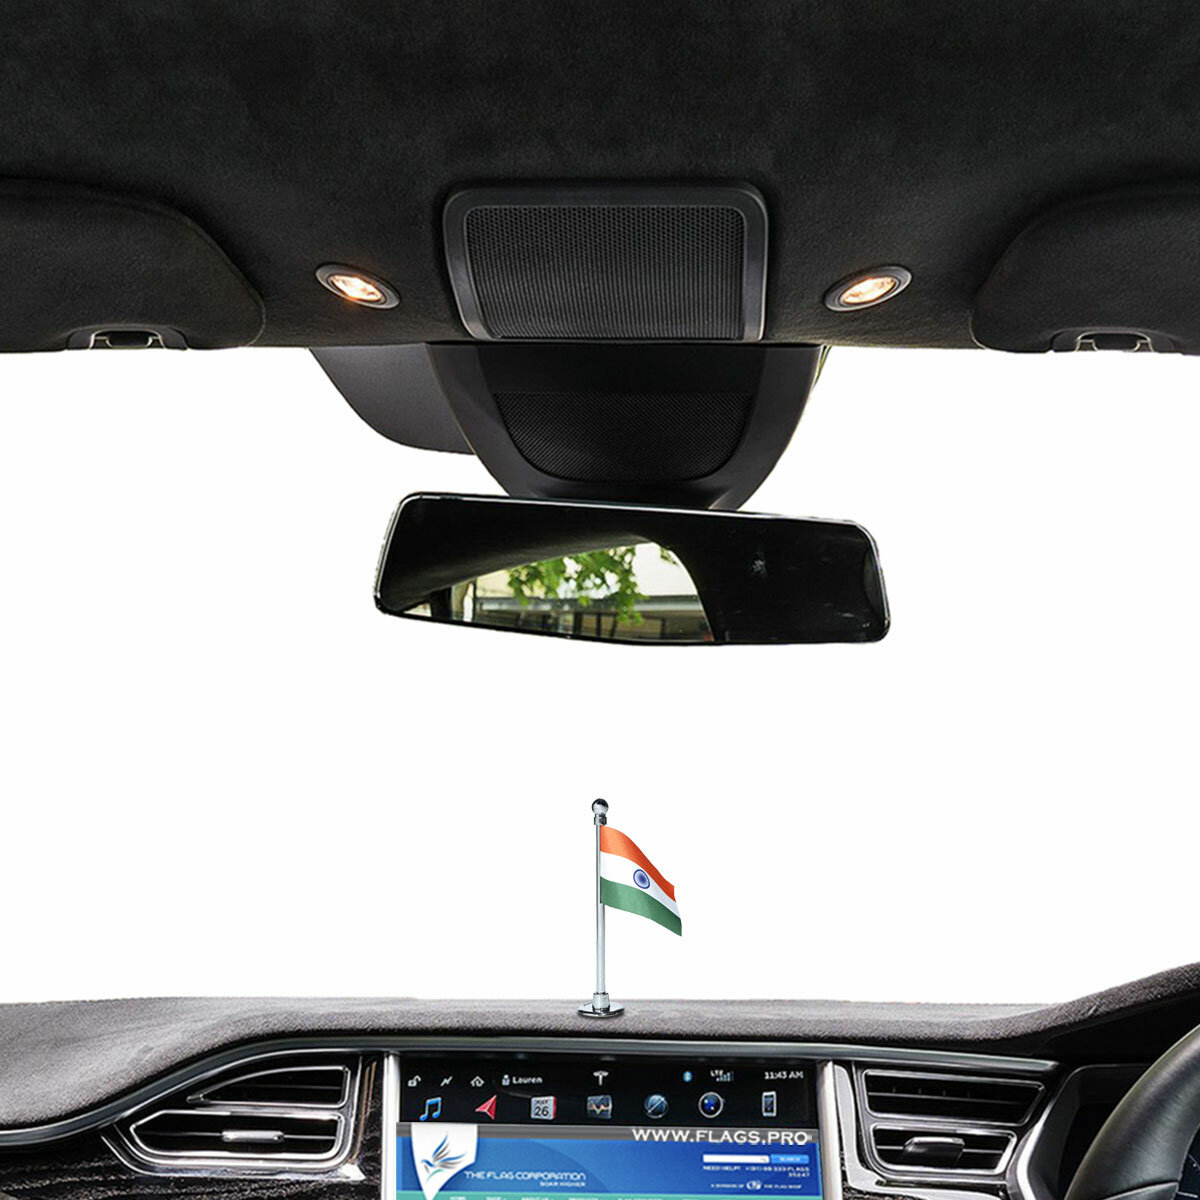 indian flag with a chrome plated plastic stand on a car dashboard